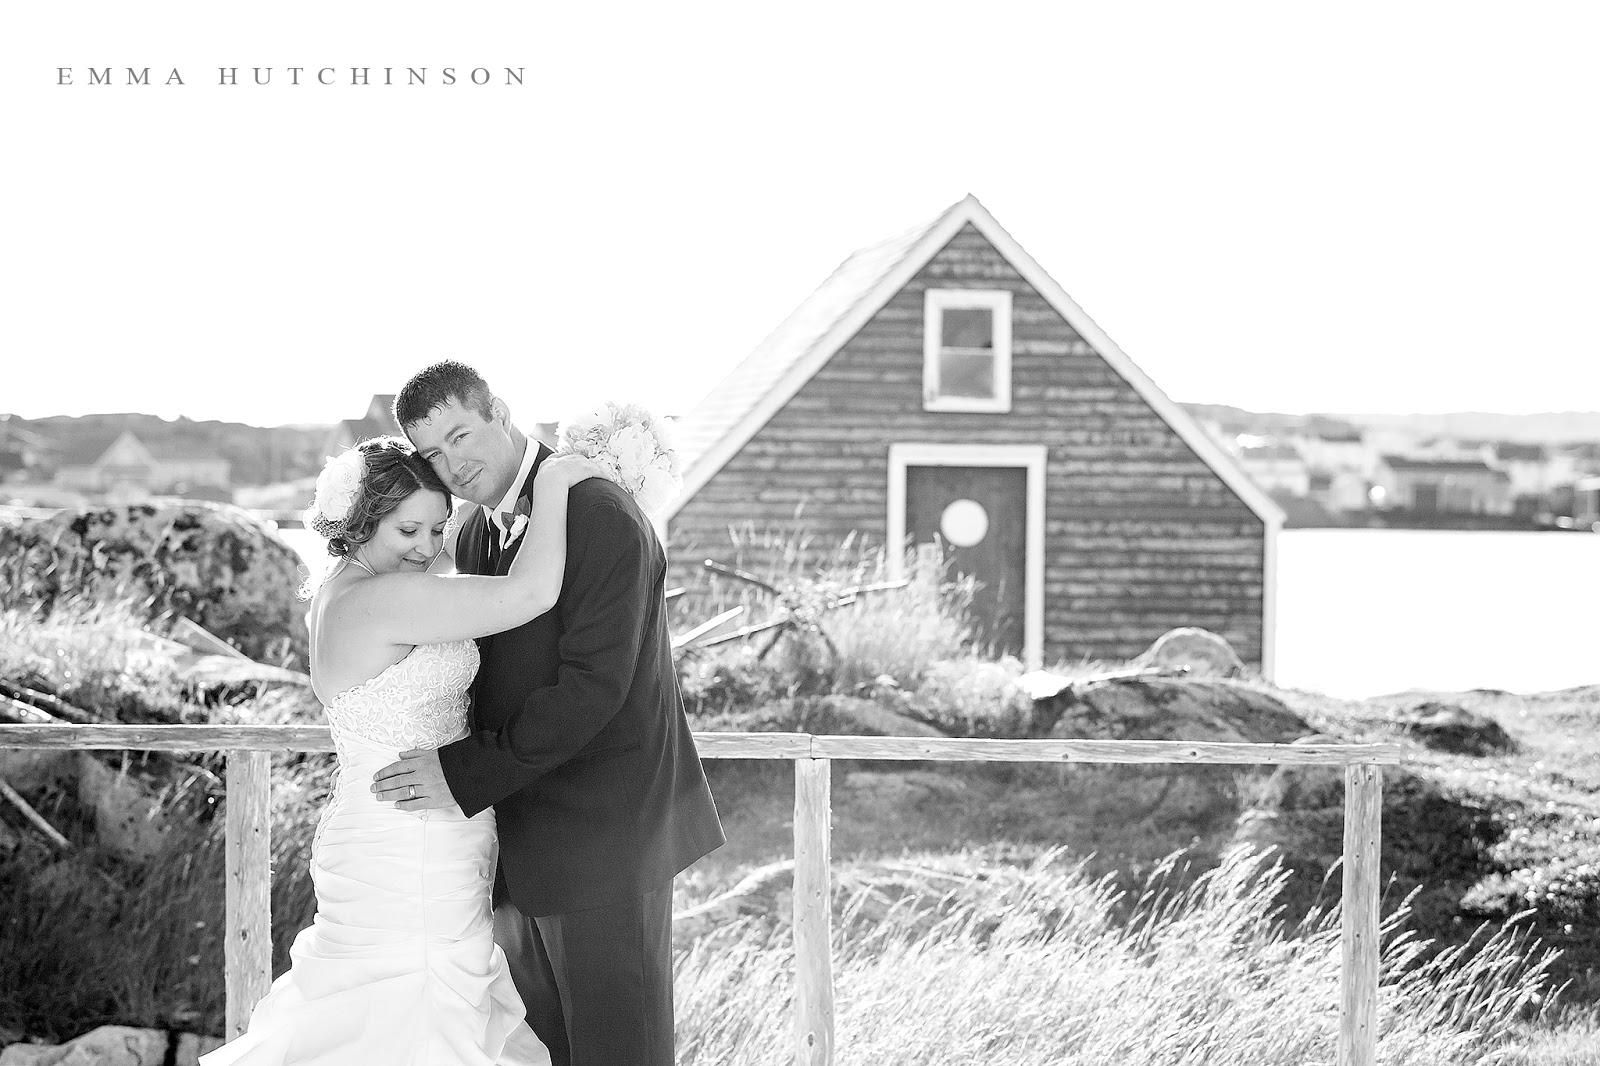 Weddings in Tilting, Fogo Island - wedding photography by Emma Hutchinson